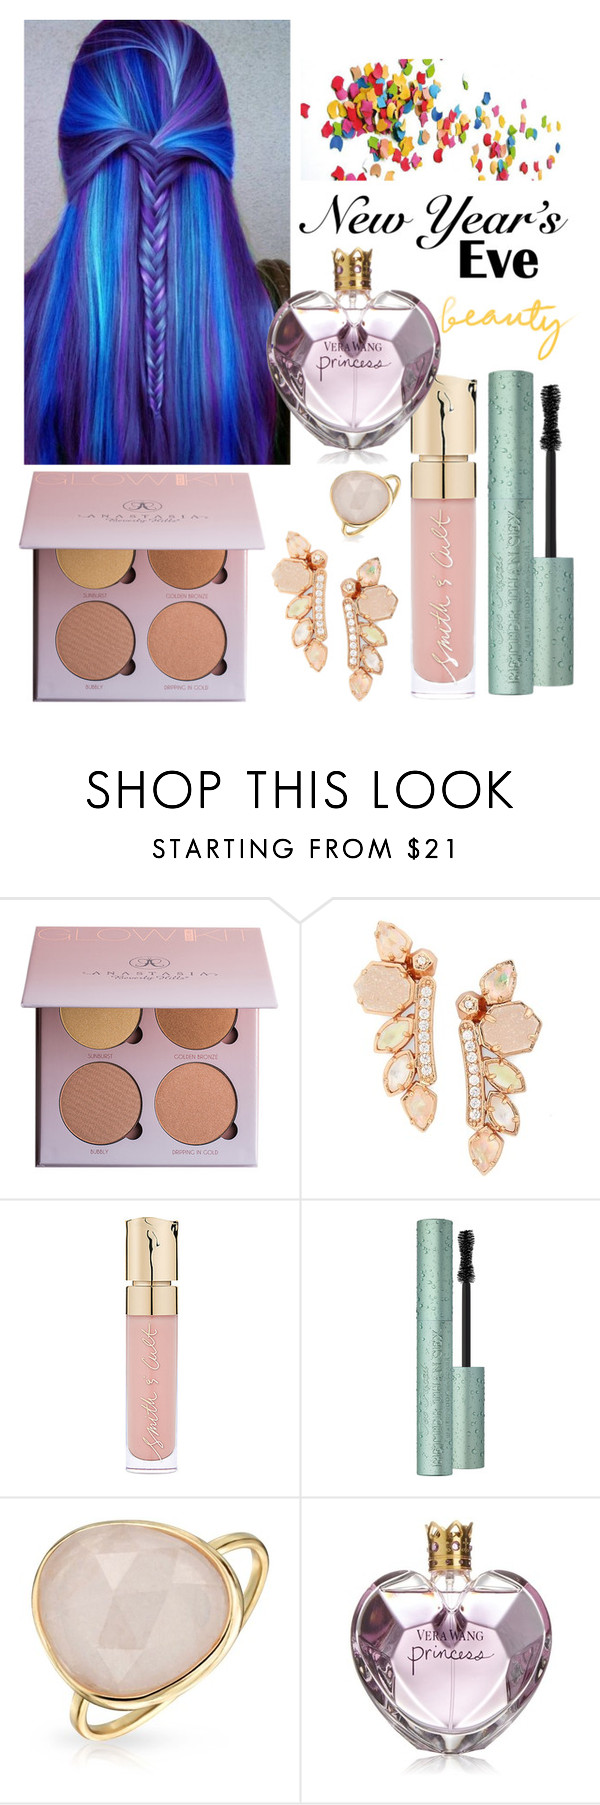 """Untitled #1591"" by purplicious ❤ liked on Polyvore featuring beauty, Kendra Scott, Smith & Cult, Bling Jewelry and Vera Wang"